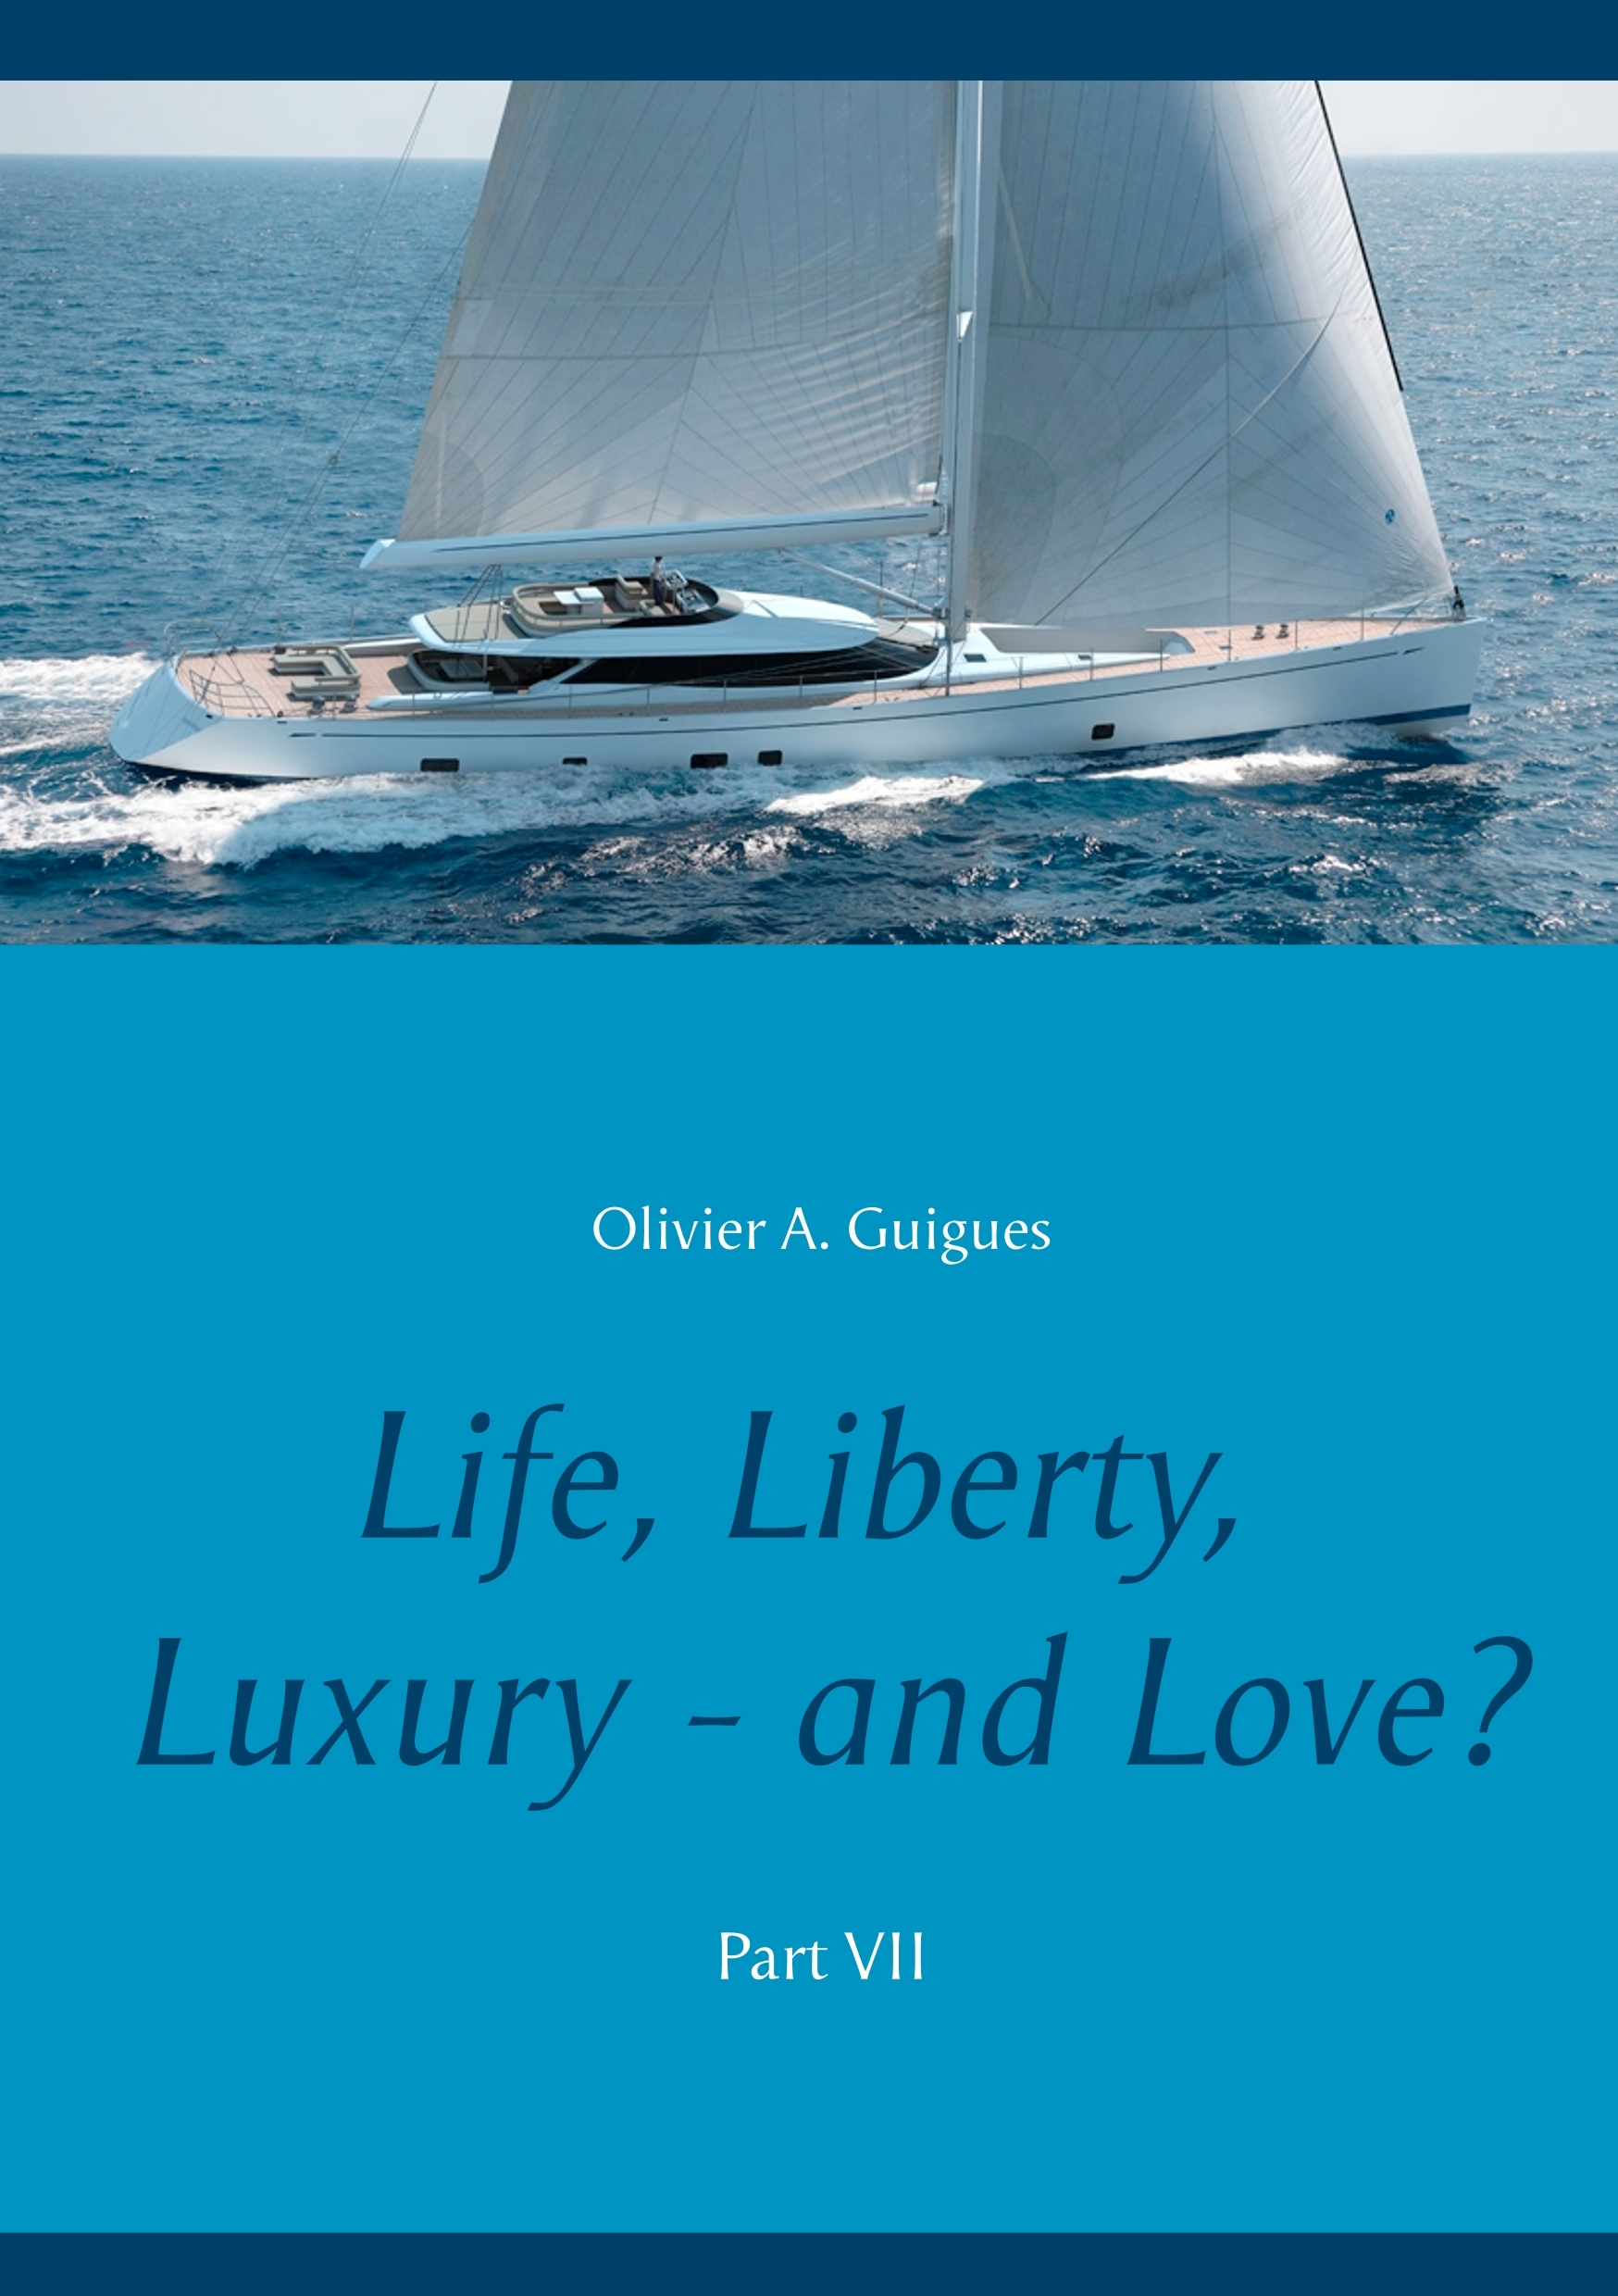 LIFE LIBERTY LUXURY - AND LOVE? - T07 - LIFE, LIBERTY, LUXURY - AND LOVE? PART VII